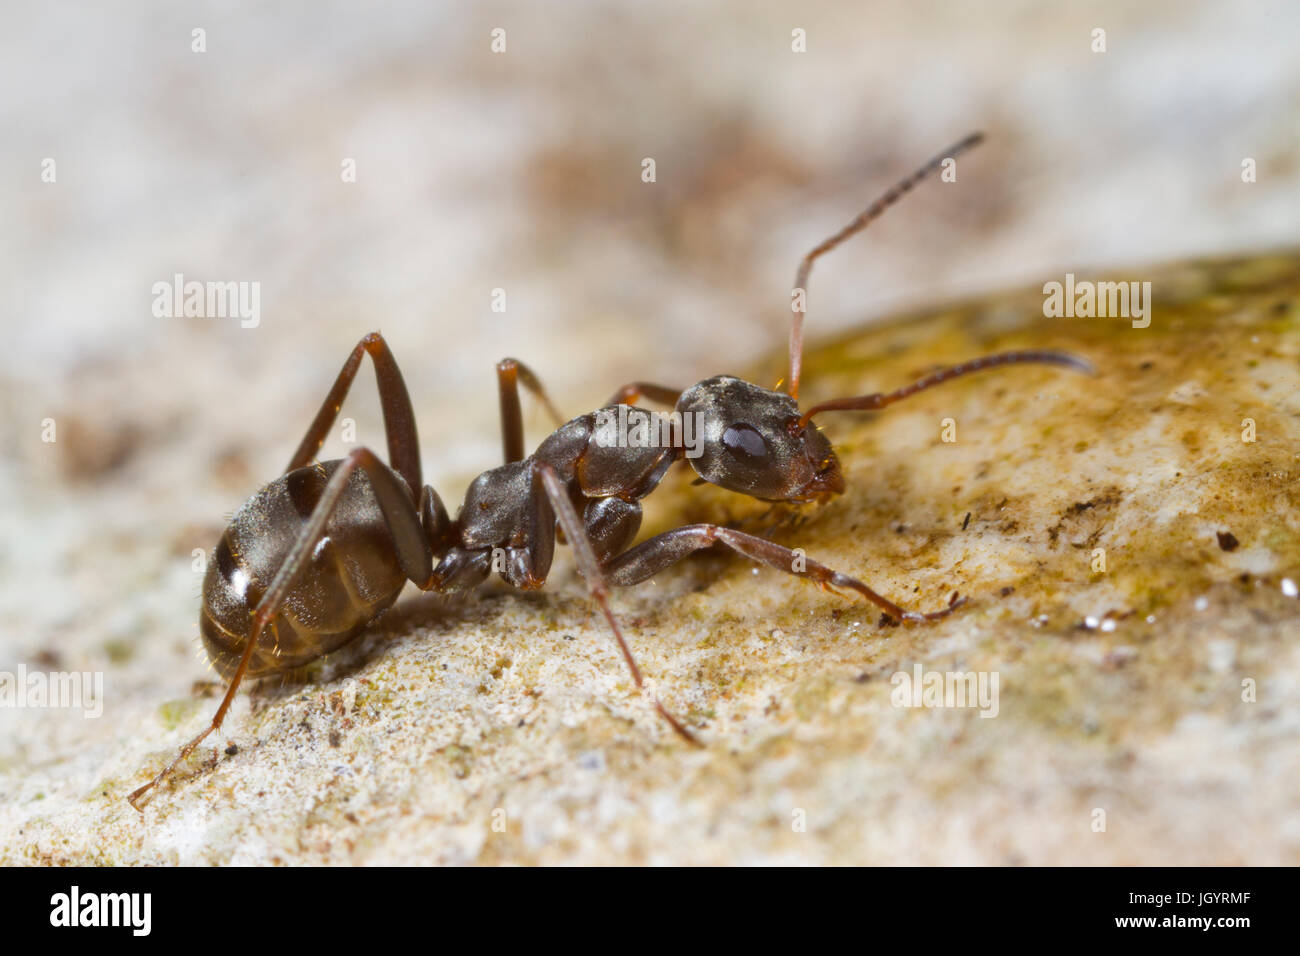 Ant Formica cunicularia adult worker drinking from a water droplet. On the Causse de Gramat, Lot Region, France. Stock Photo